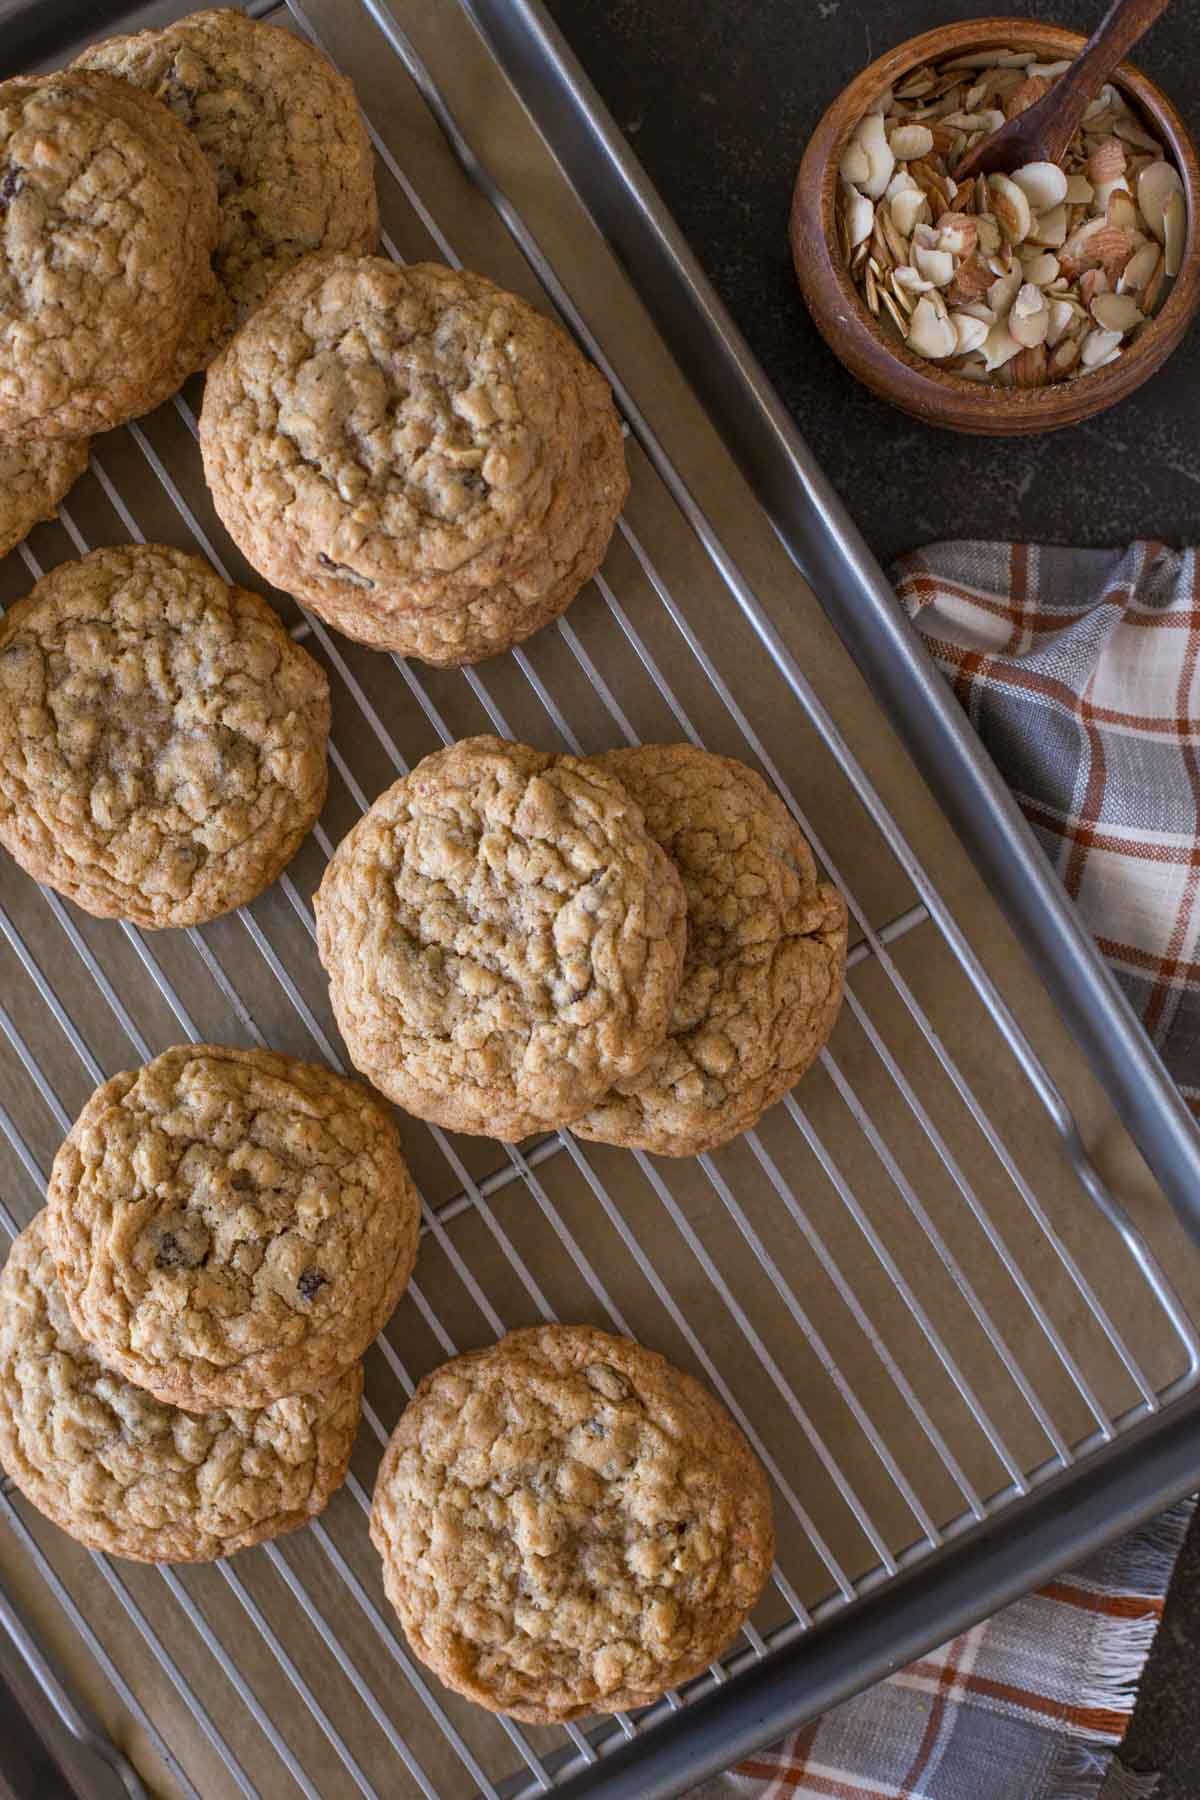 Bakery Style Oatmeal Raisin Cookies on a cooling rack that is on top of a parchment paper lined baking sheet, with a small wood bowl of slice almonds next to it.